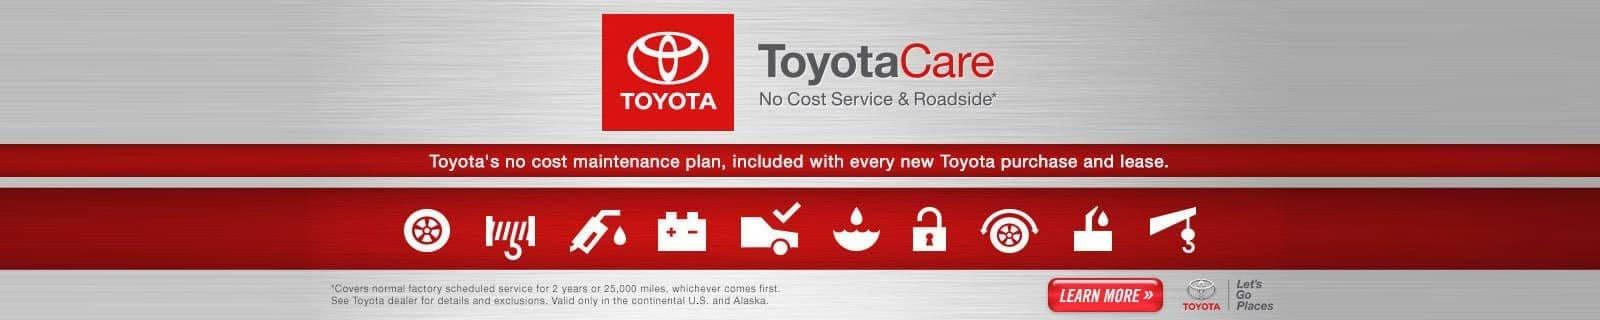 toyota-care-banner